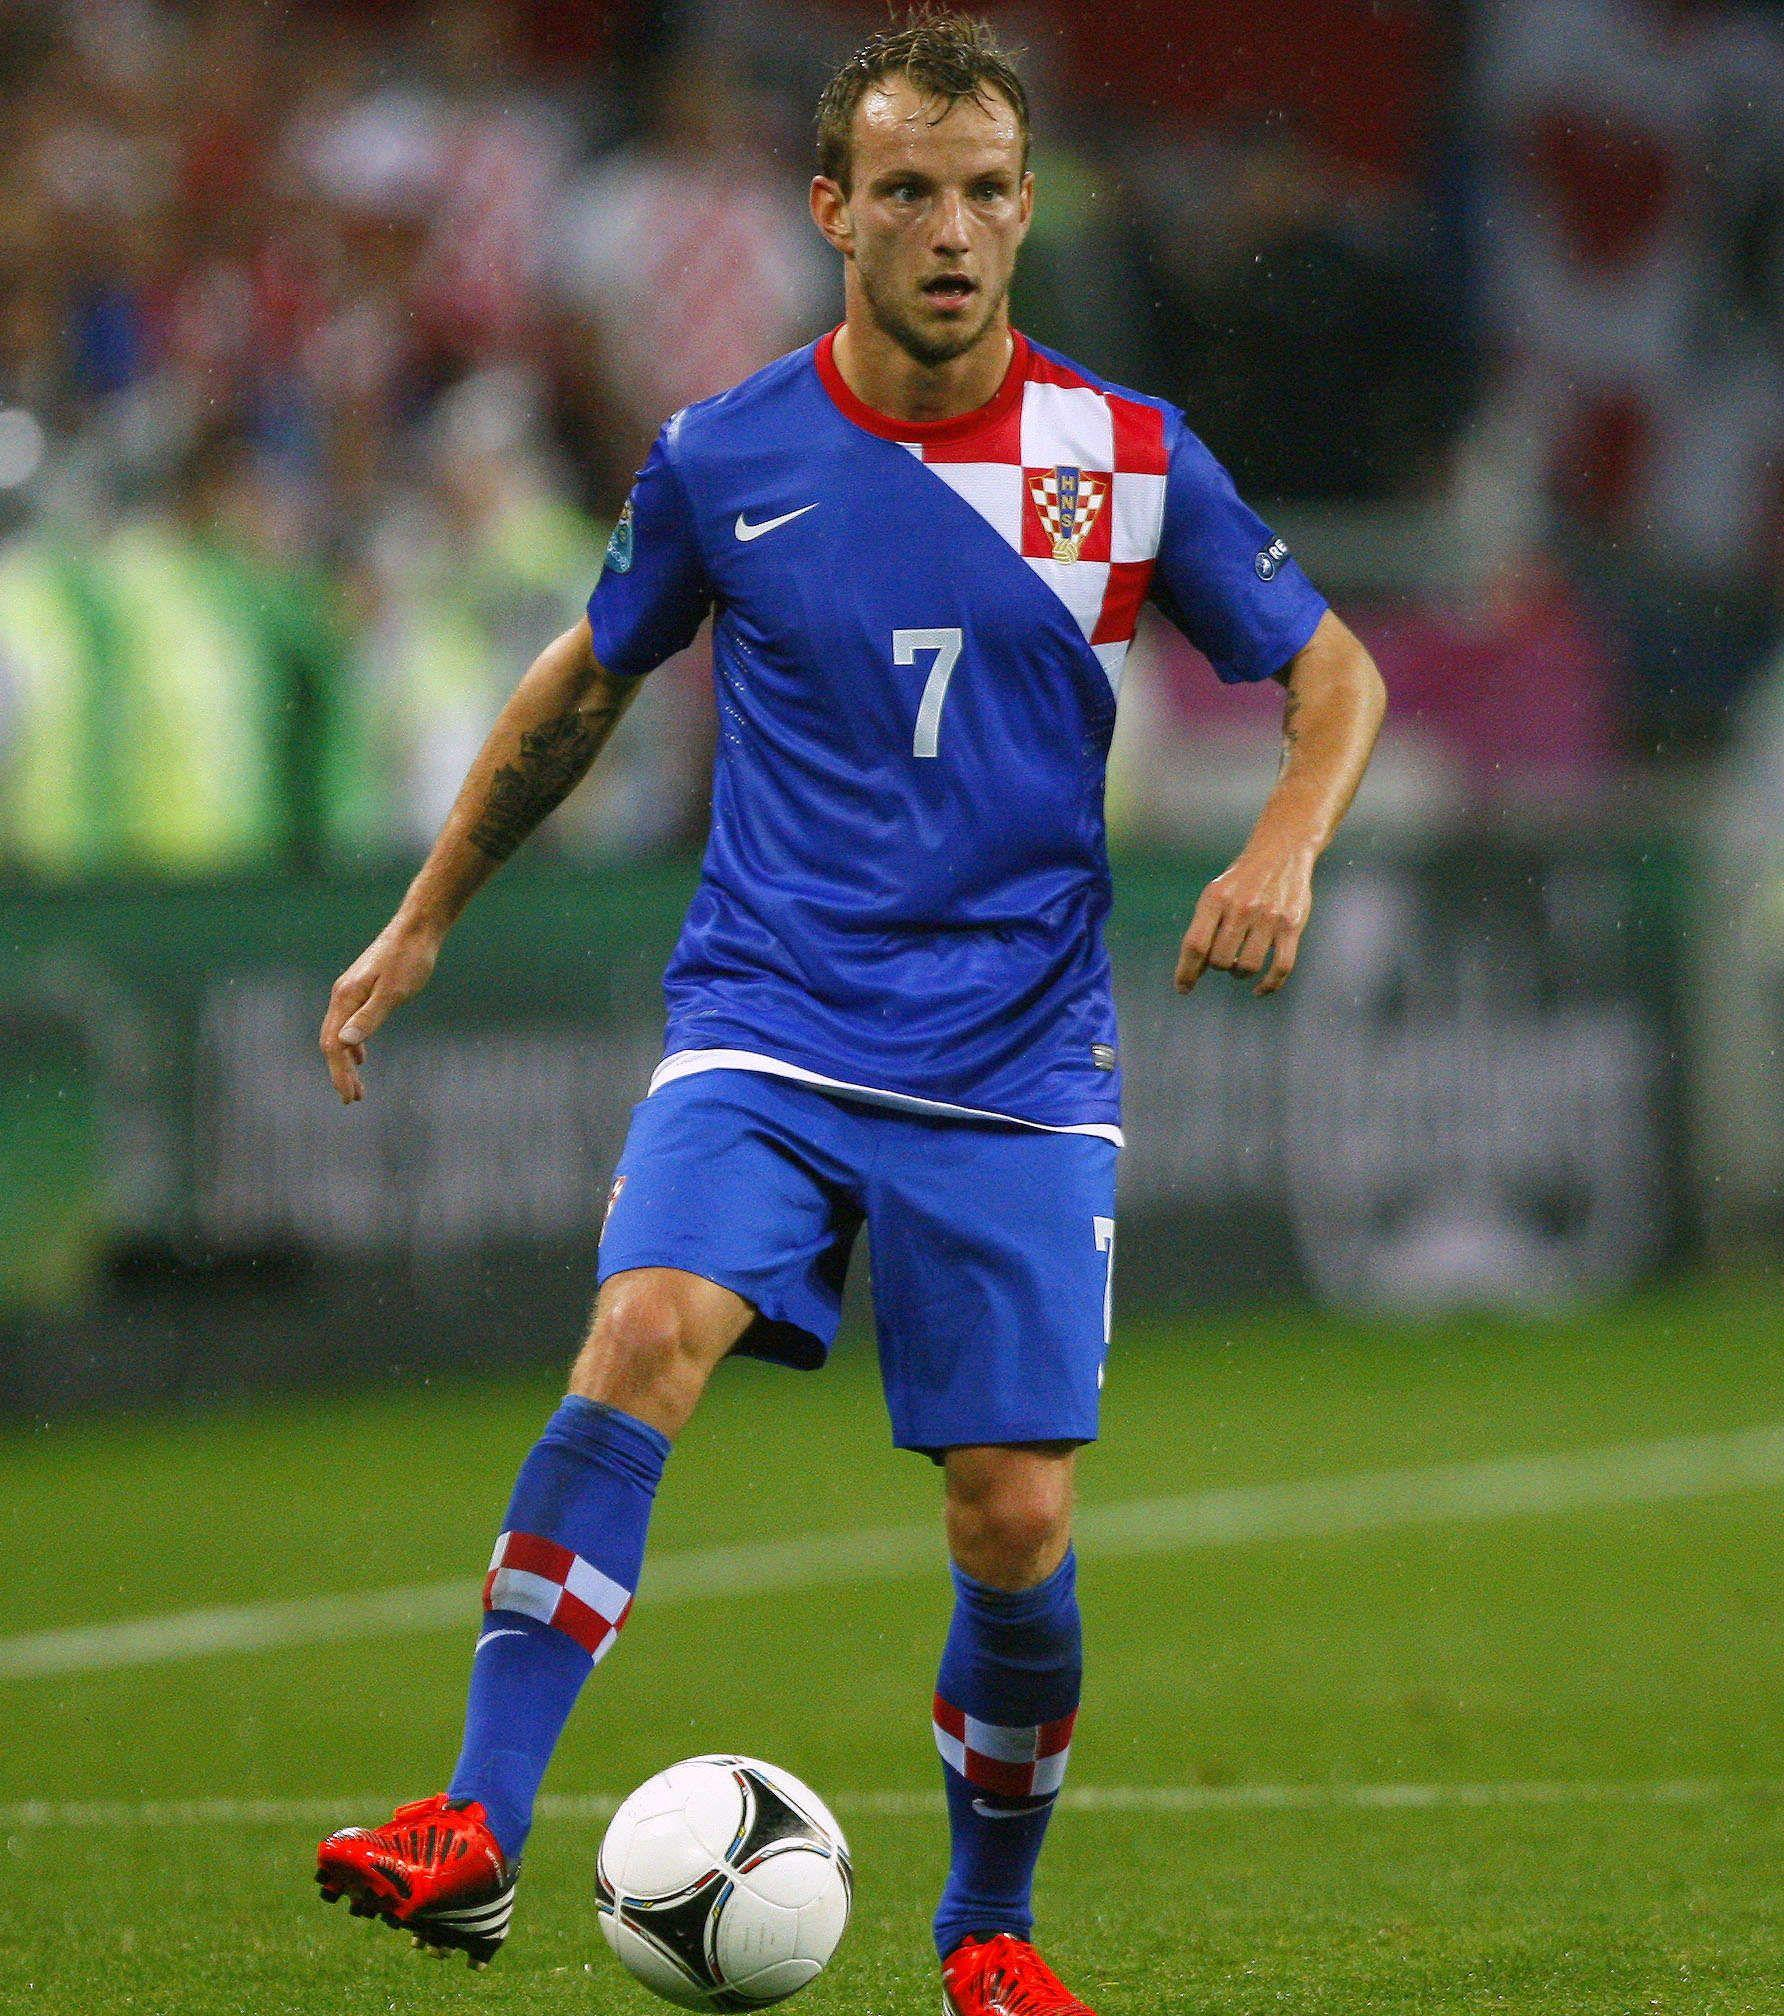 Ivan Rakitic on Croatia National Team | Soccer | Pinterest